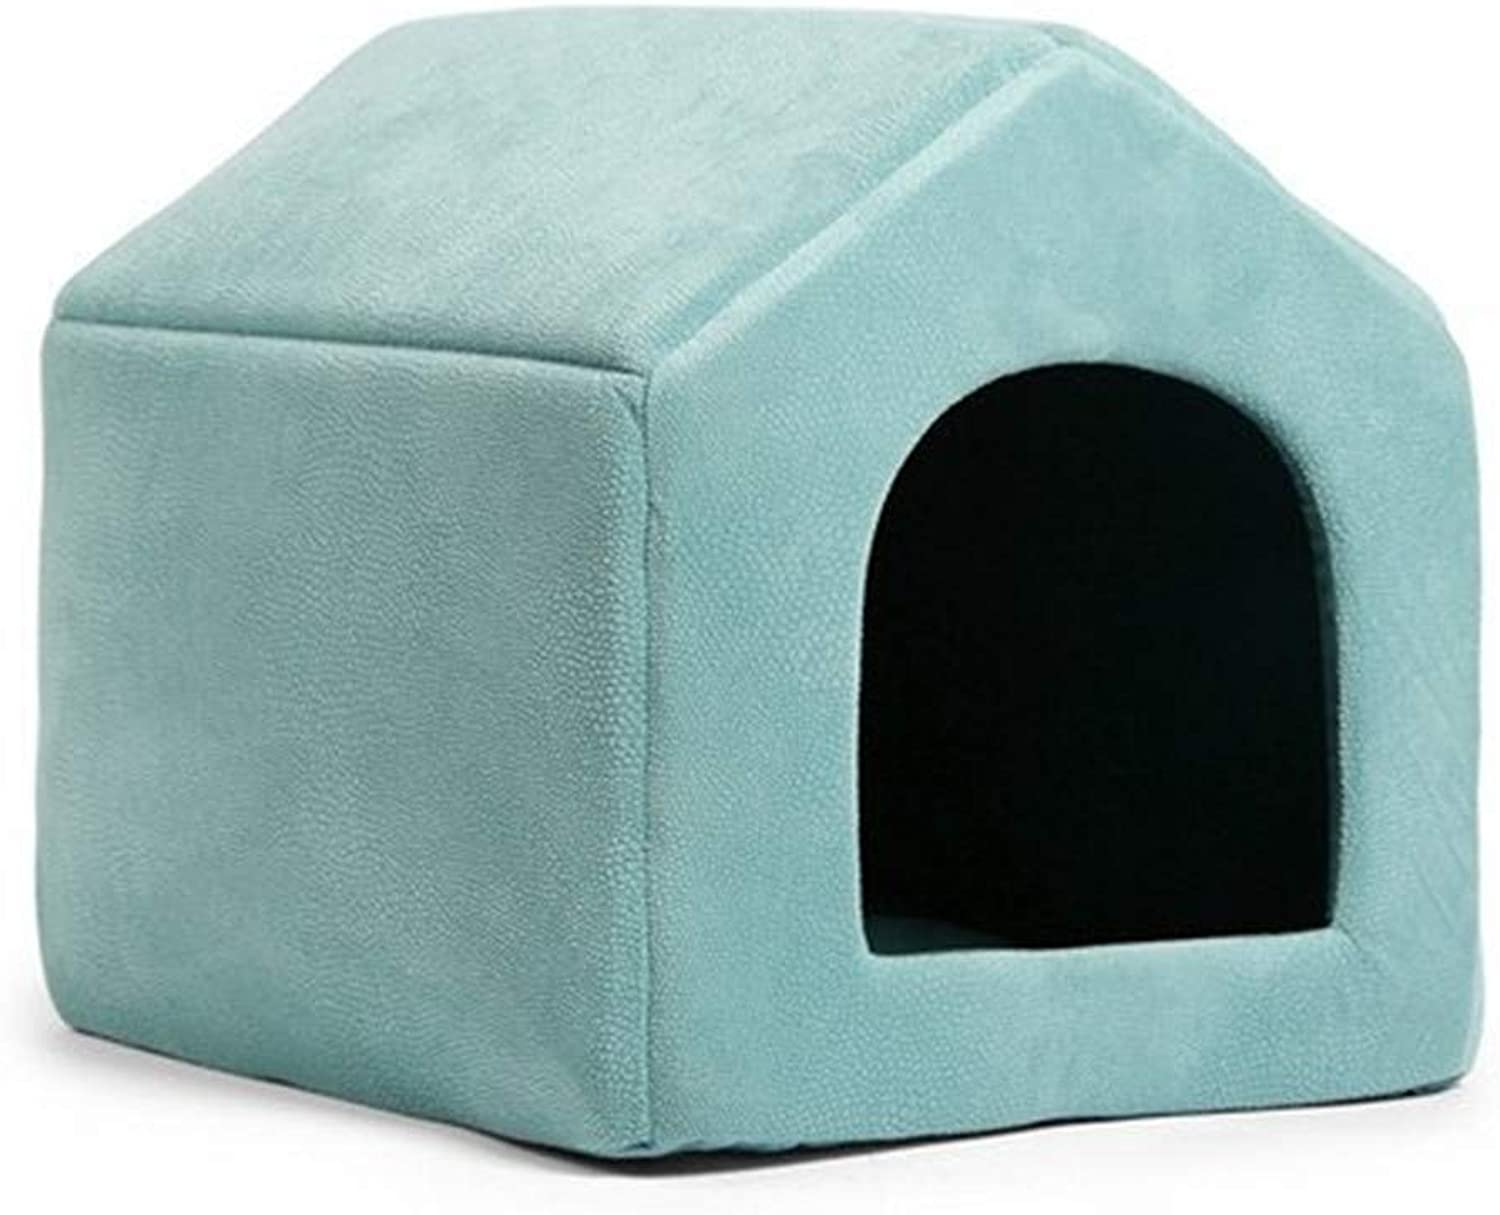 PetvillaLKR Pet Products Luxury Dog House Cozy Dog Bed Puppy Kennel 5 color Pet Sleeping Bed Cat Cushion Kitten Mats Pet Shop Sky bluee,M